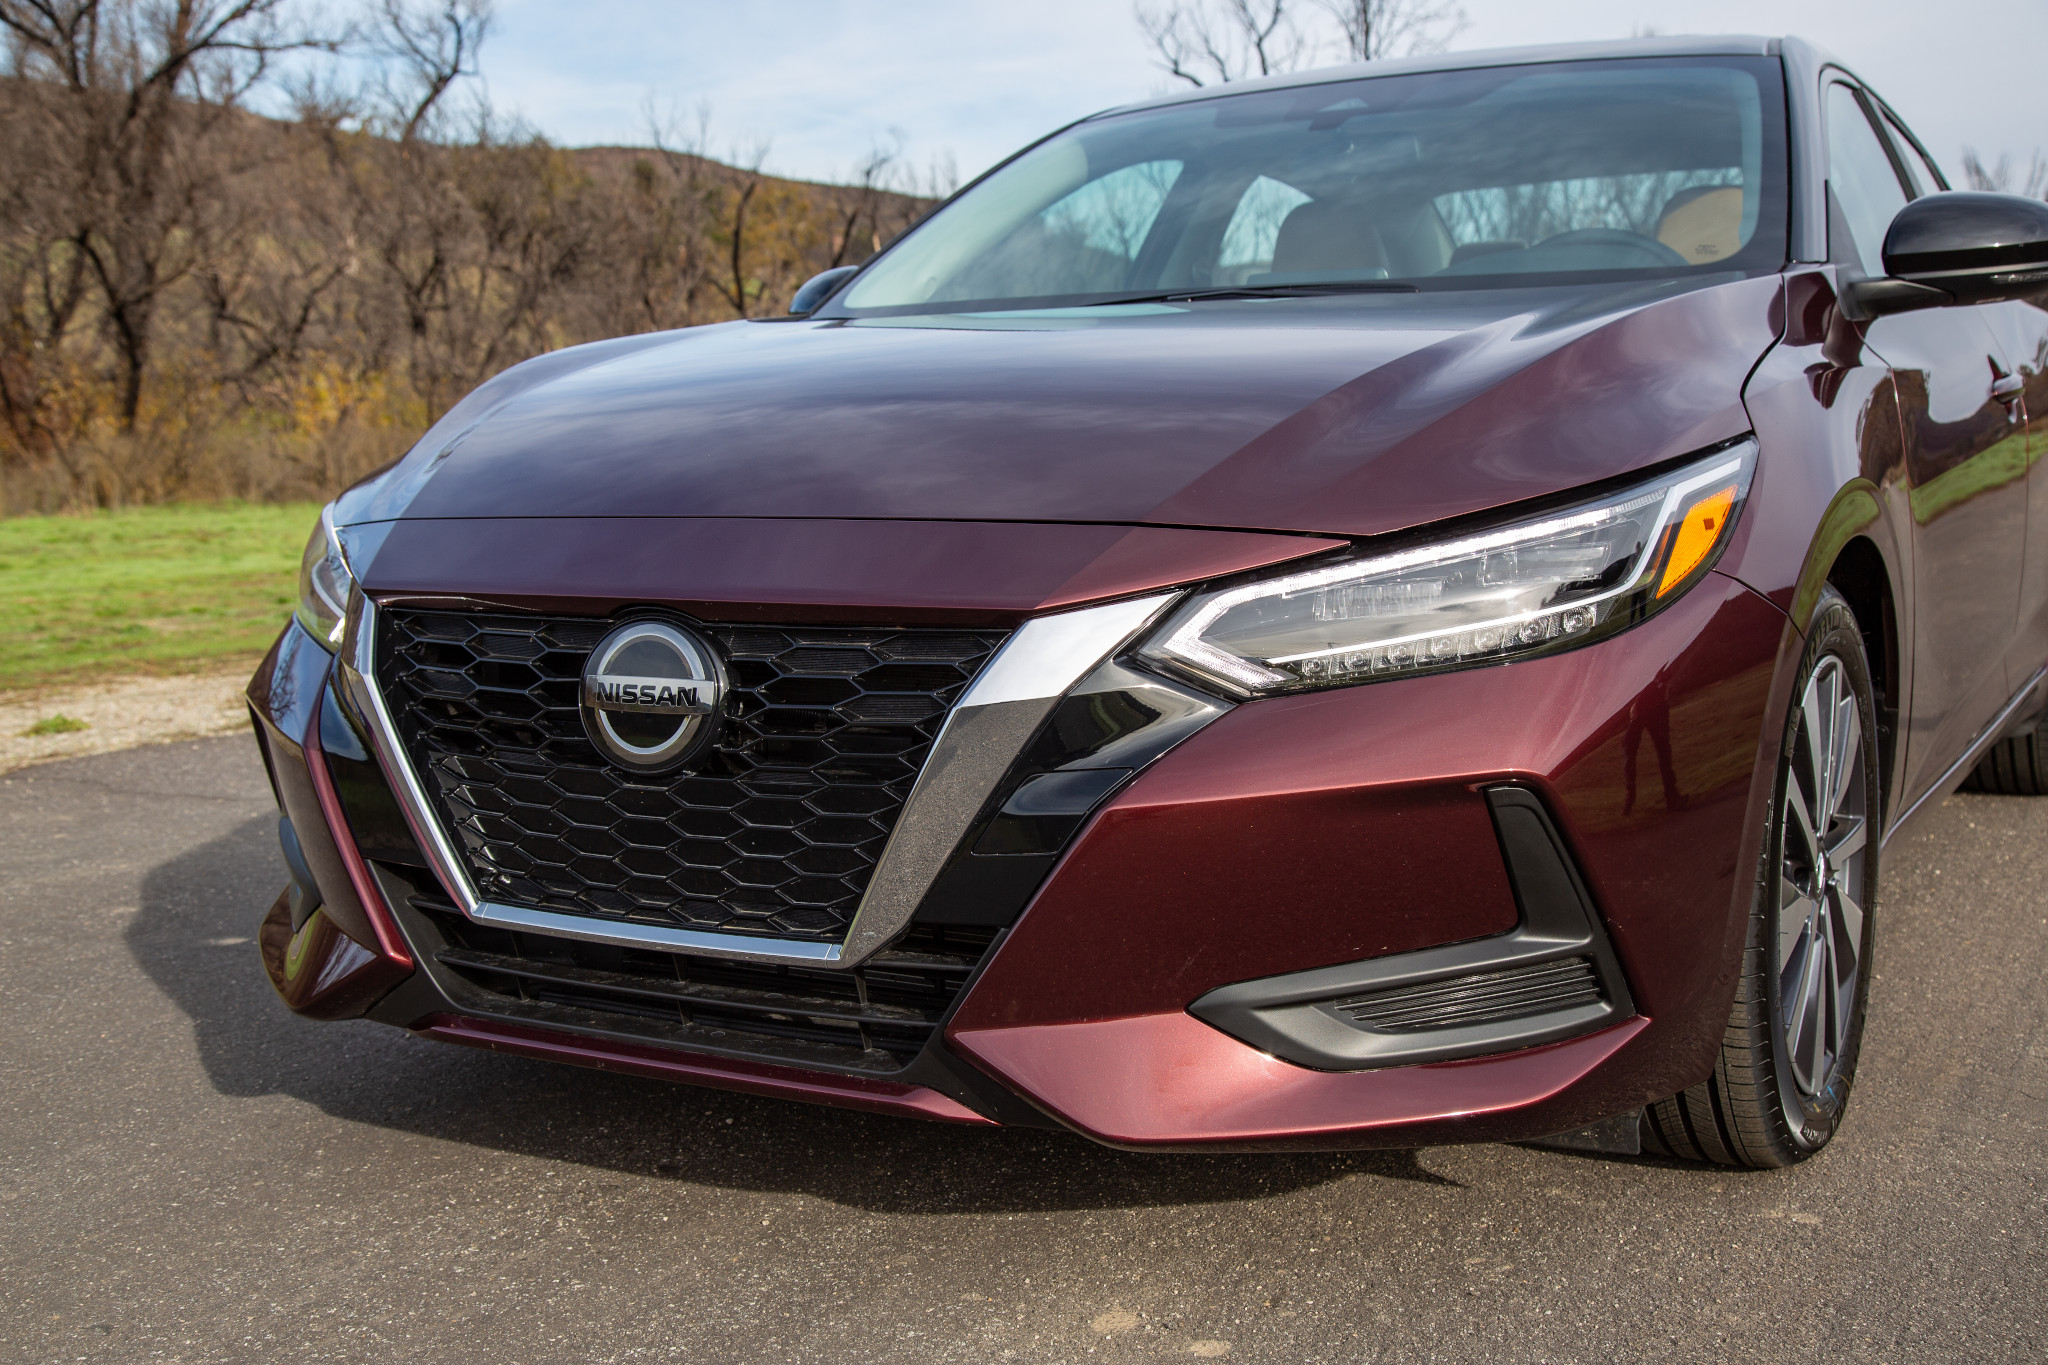 nissan-sentra-sv-2020-03-angle--exterior--front--red.jpg